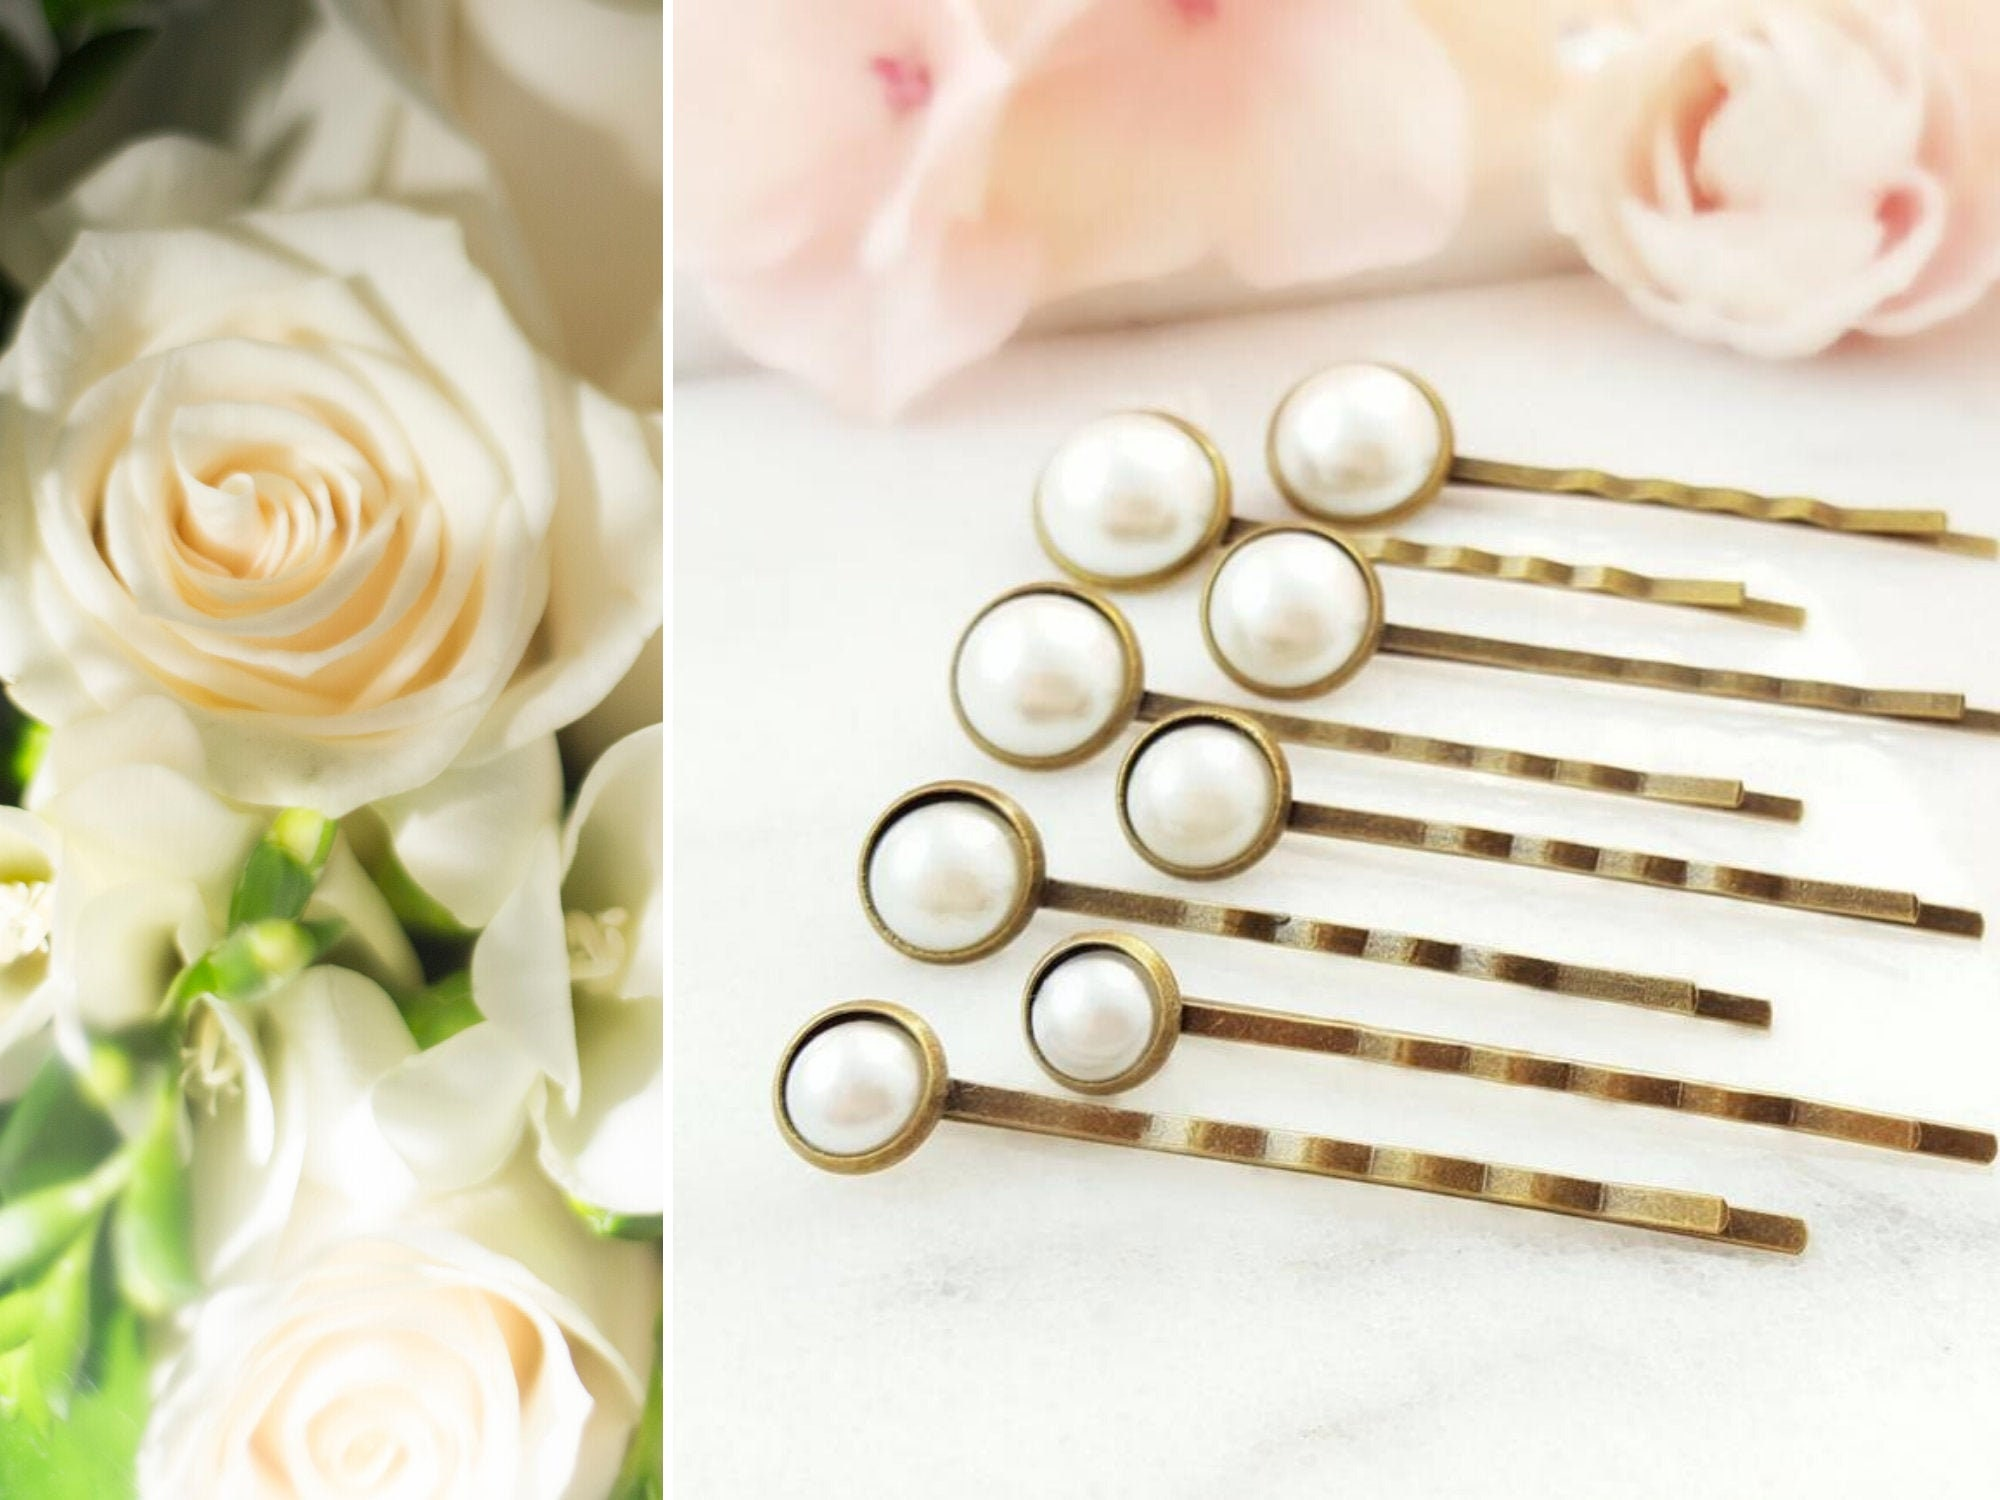 PEARL HAIR PINS Set of 18, White Bun Bobby Pins, Pearl Wedding Hair Pick,  Classic Ivory Bridal Hair Accessories for Wedding Party Gift H18A